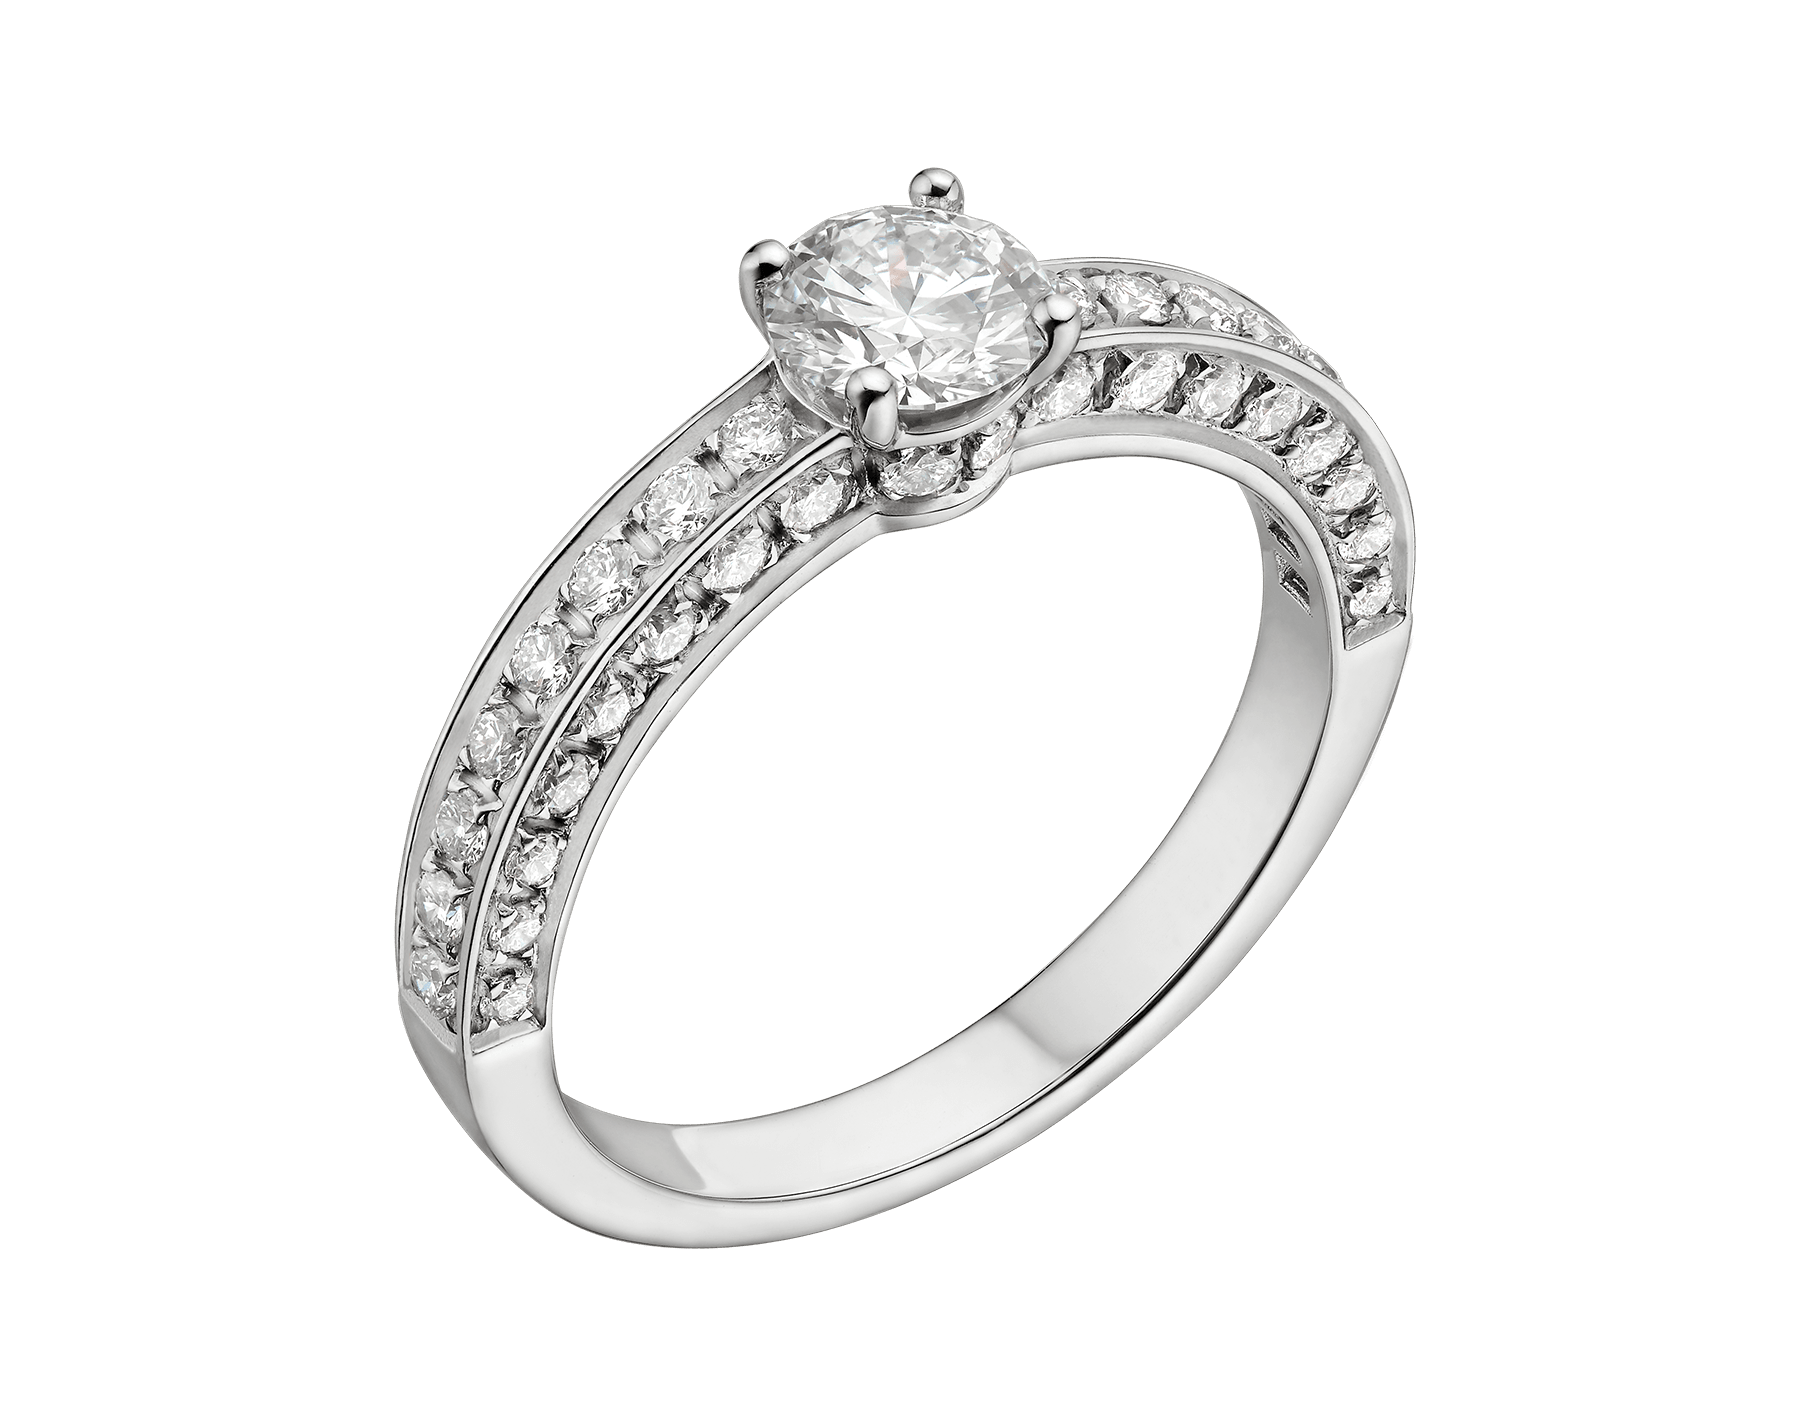 Dedicata a Venezia: 1503 solitaire ring in platinum with a round brilliant-cut diamond and pavé diamonds. Available from 0.30 ct. Named after the year in which the first engagement ring was offered in Venice. 343580 image 1